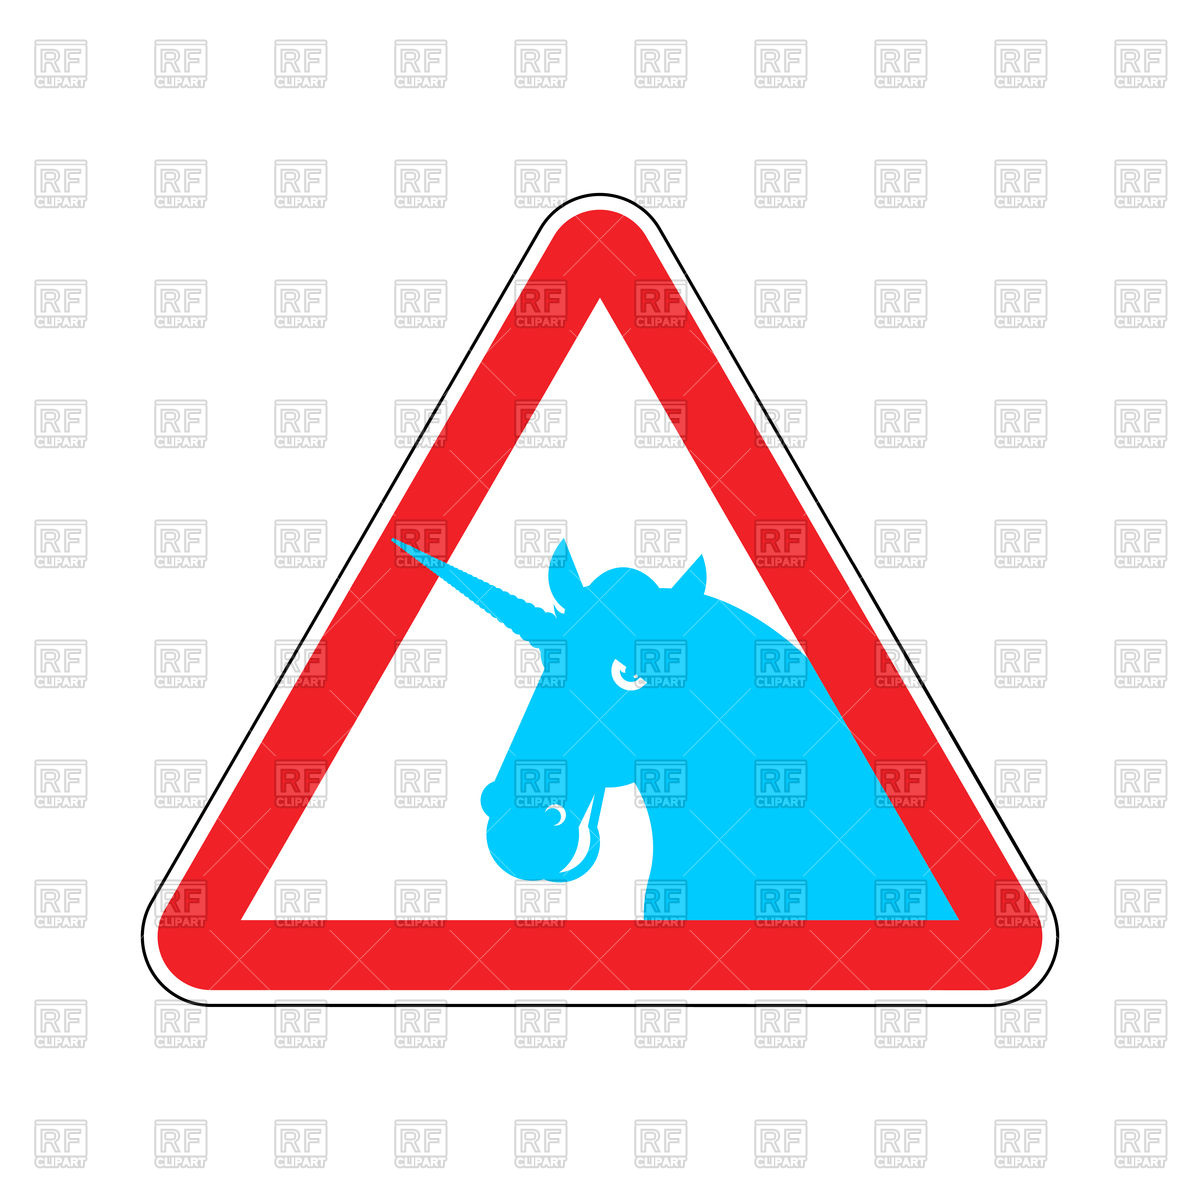 Triangular red attention sign with blue unicorn, dangers road sign Stock  Vector Image.